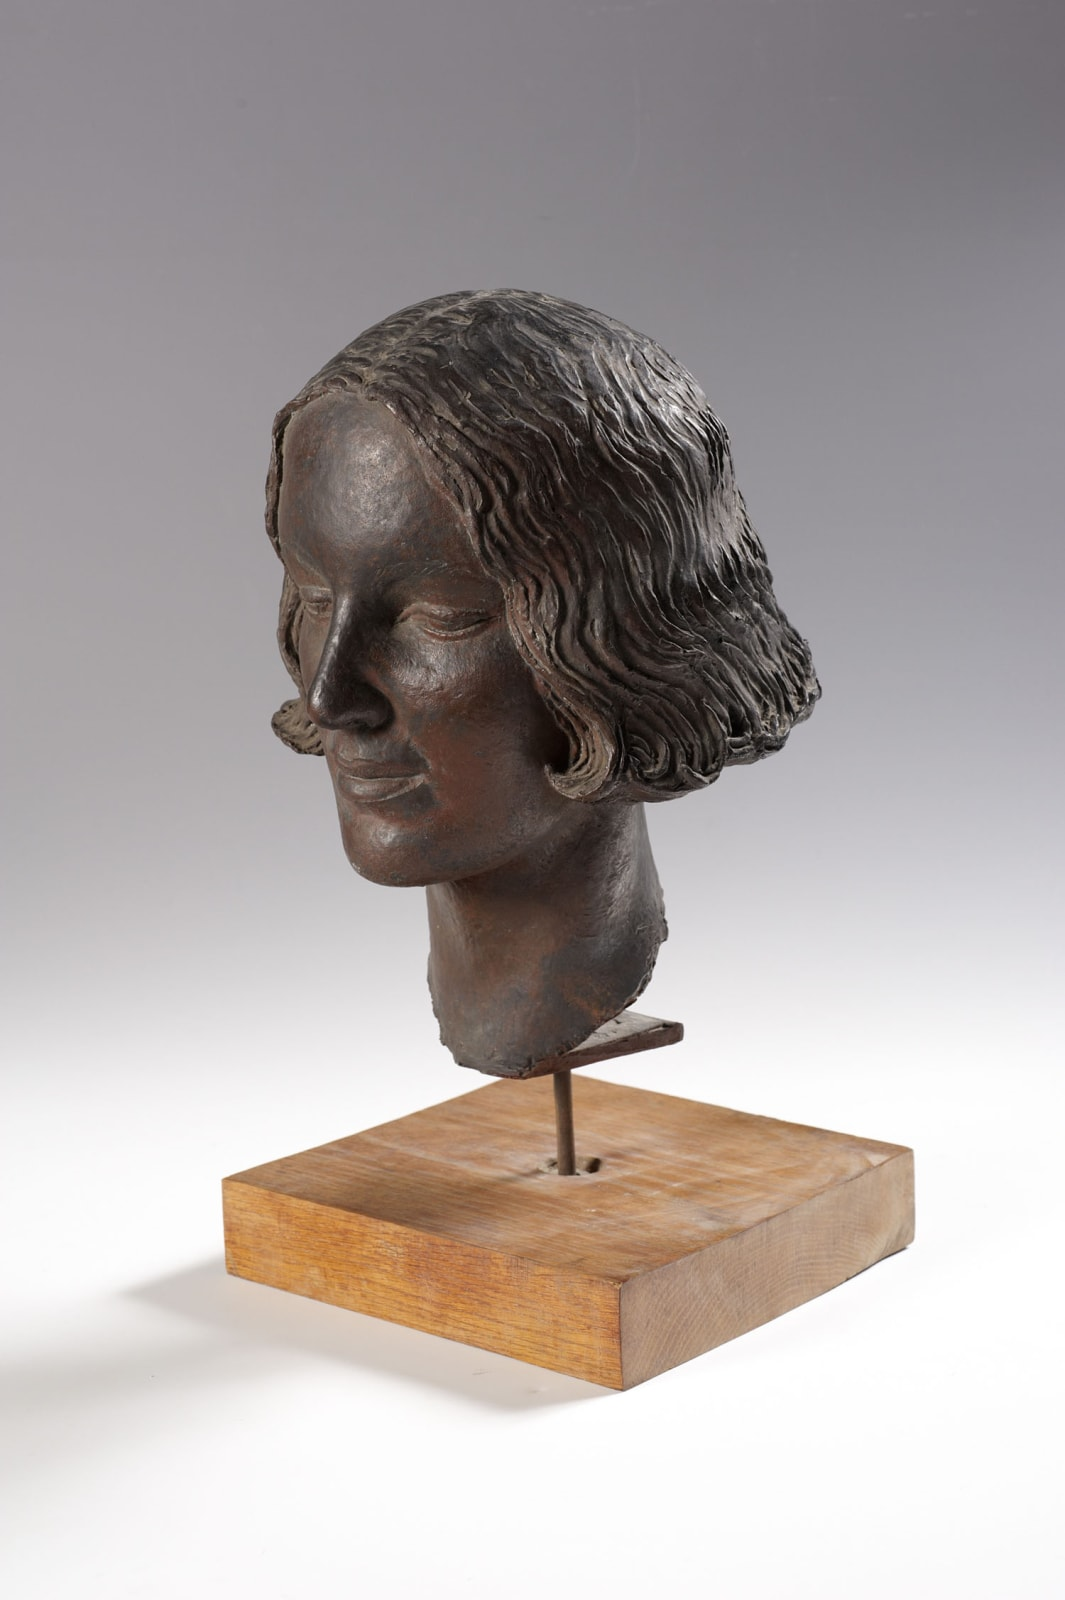 Elsa Fraenkel (1892-1975) Head of a Girl c.1938 Bronze, wooden base 30 x 22 x 23 cm Ben Uri Collection © Elsa Fraenkel estate To see and discover more about this artist click here